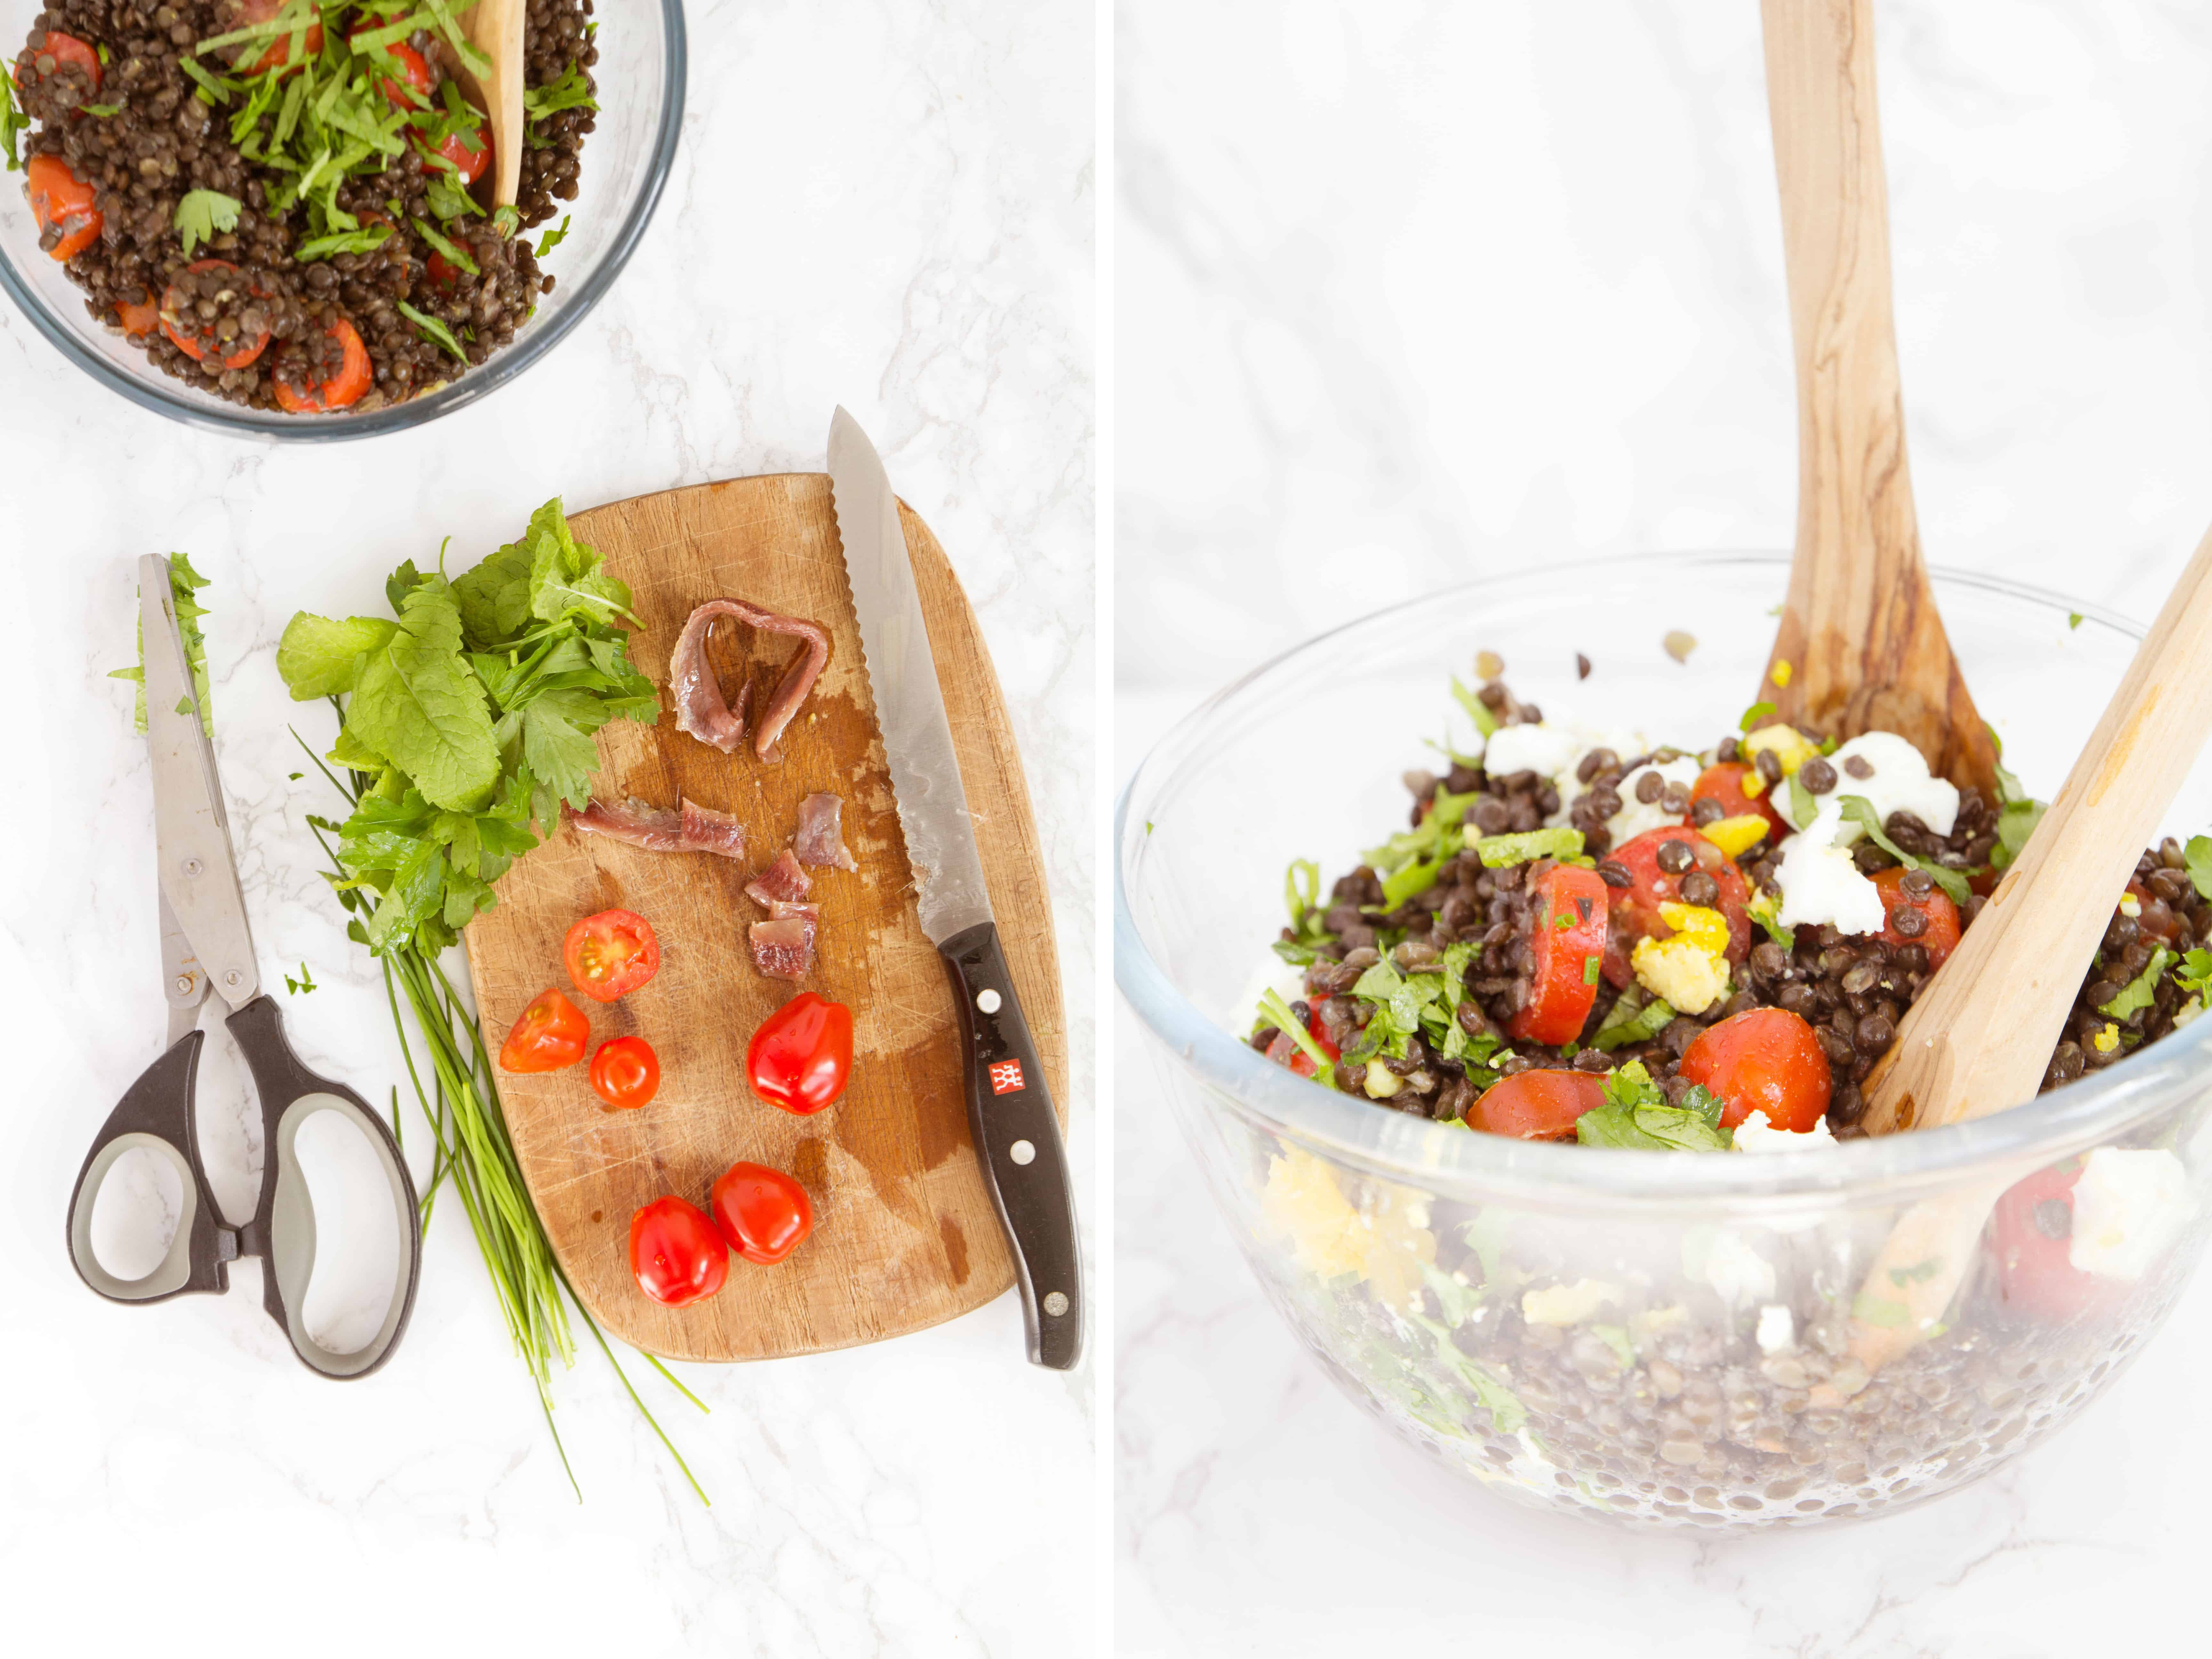 This flavorsome, eye-catching Mediterranean puy lentil salad is beyond delicious. An easy, healthy and economical salad loaded with protein, fresh herbs and a garlicky mustard dressing. This is sunshine on a plate!